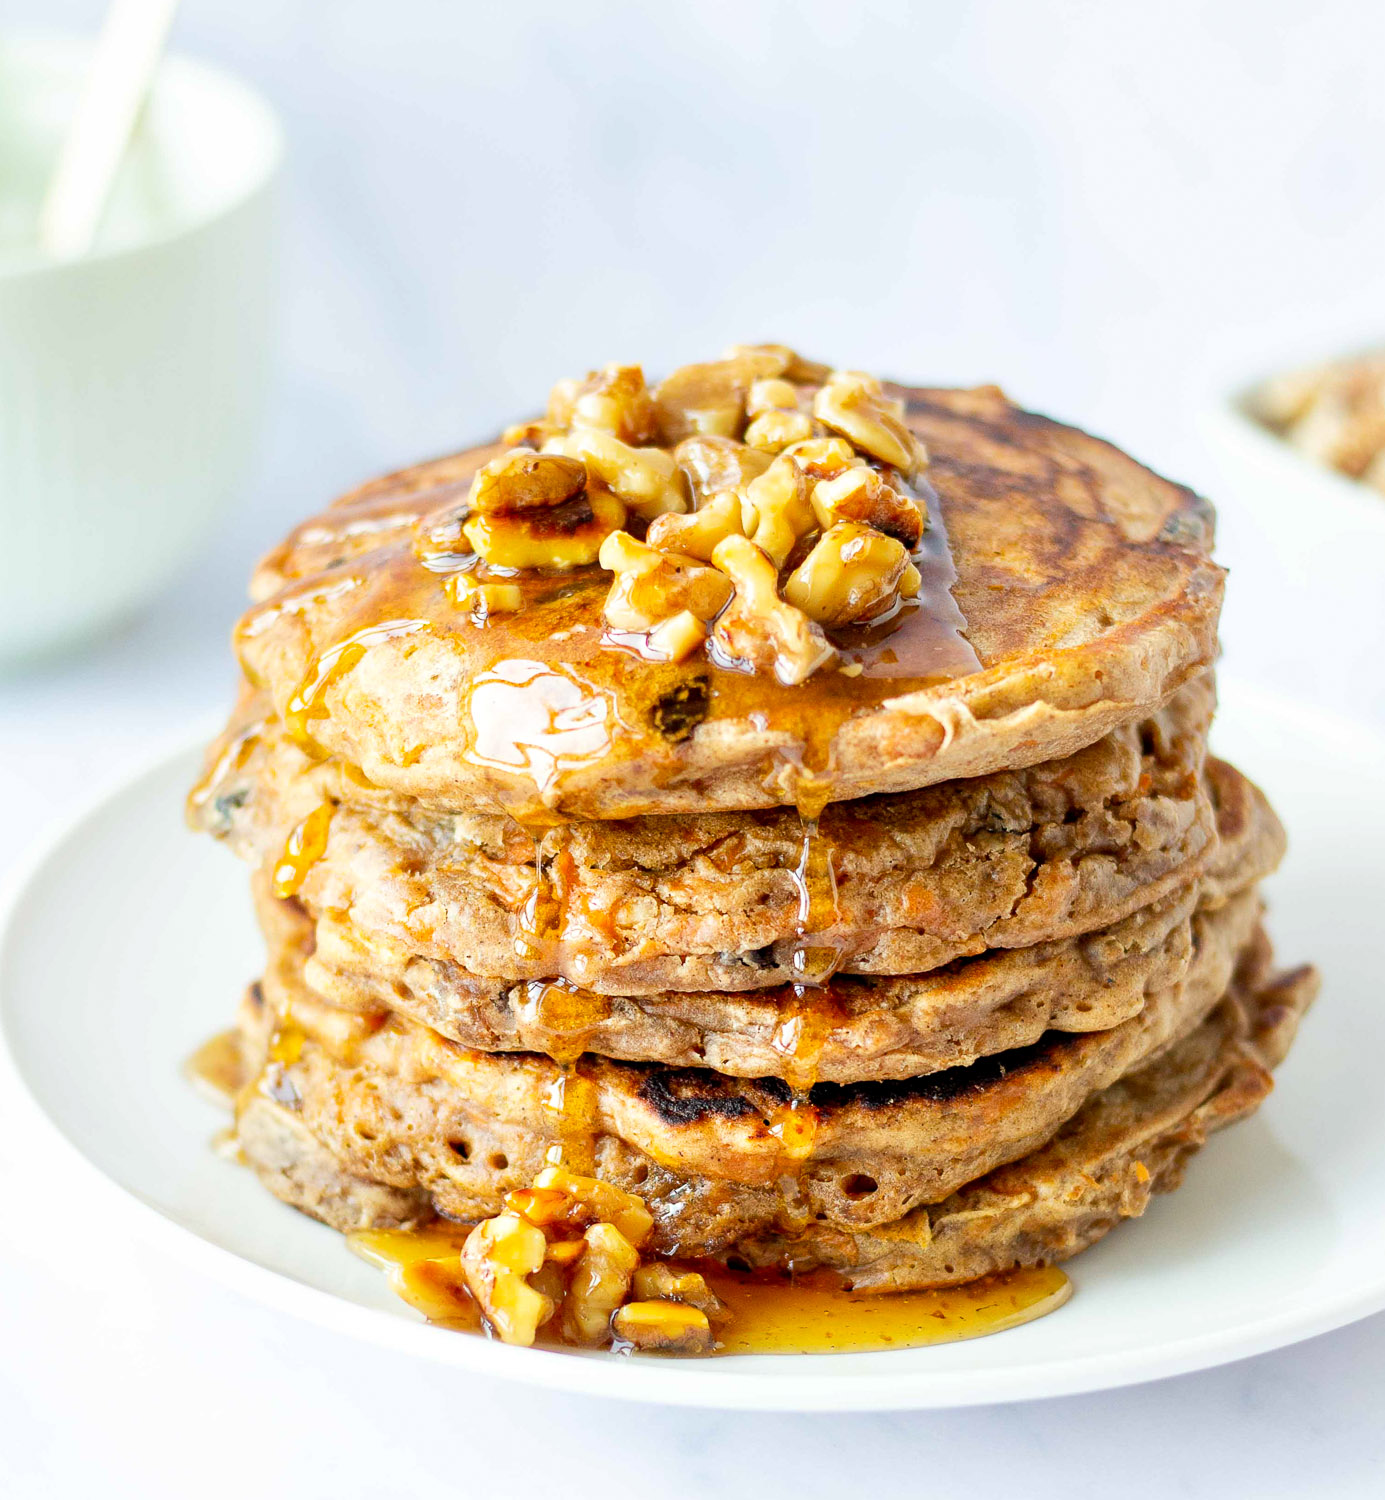 stack of whole wheat carrot cake pancakes topped with walnut syrup